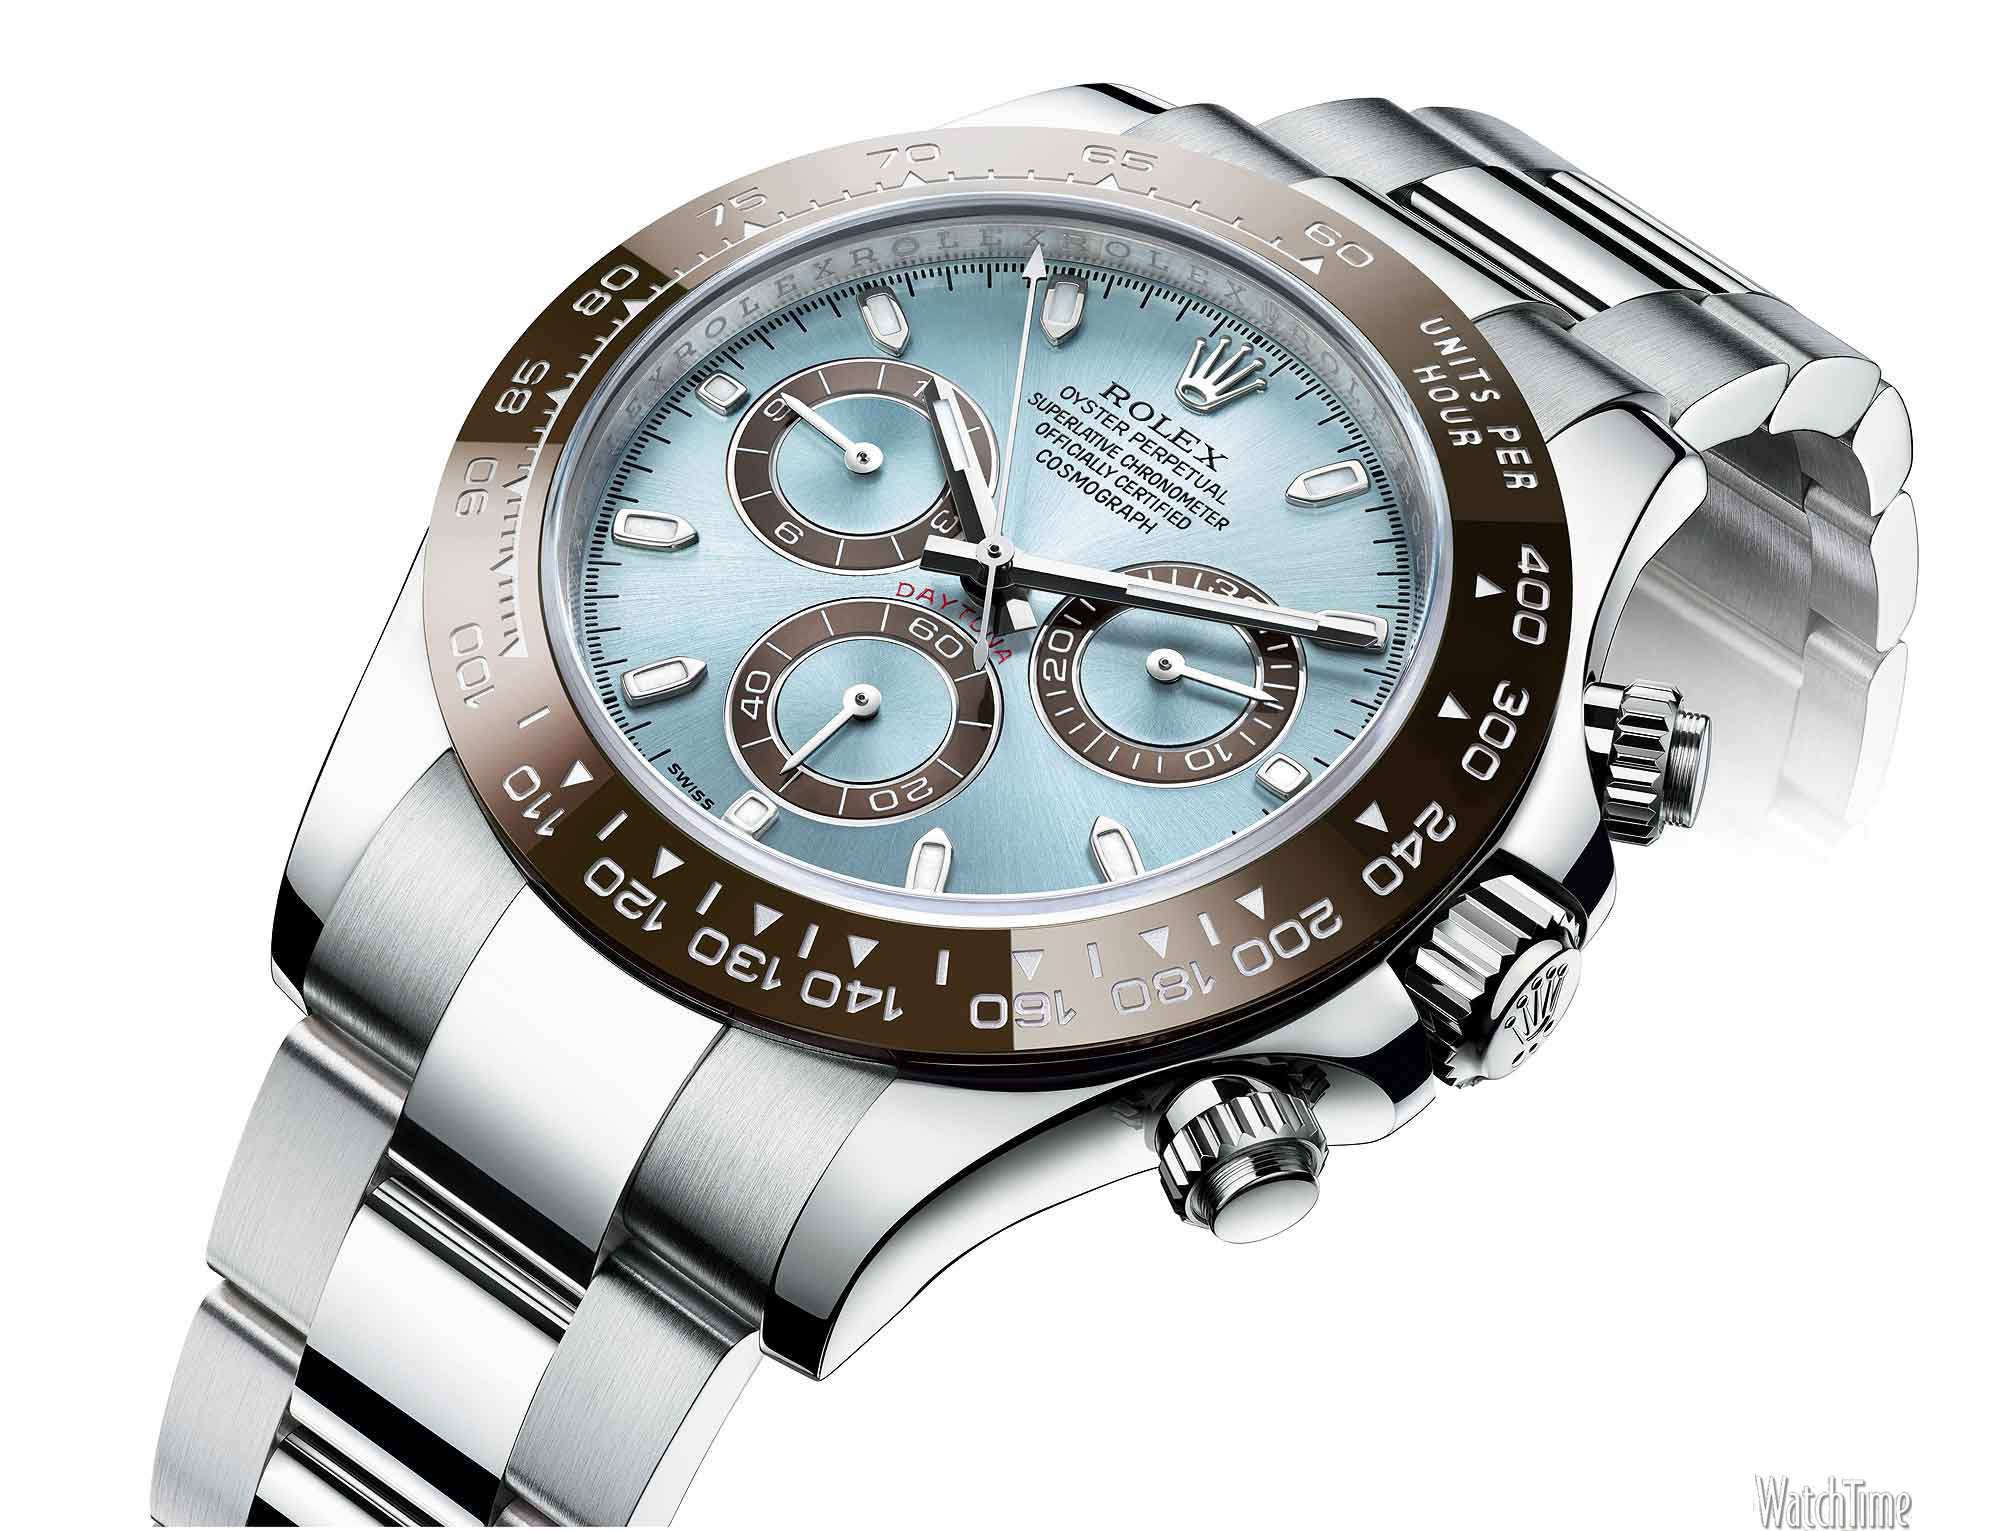 Rolex Daytona Review 2013